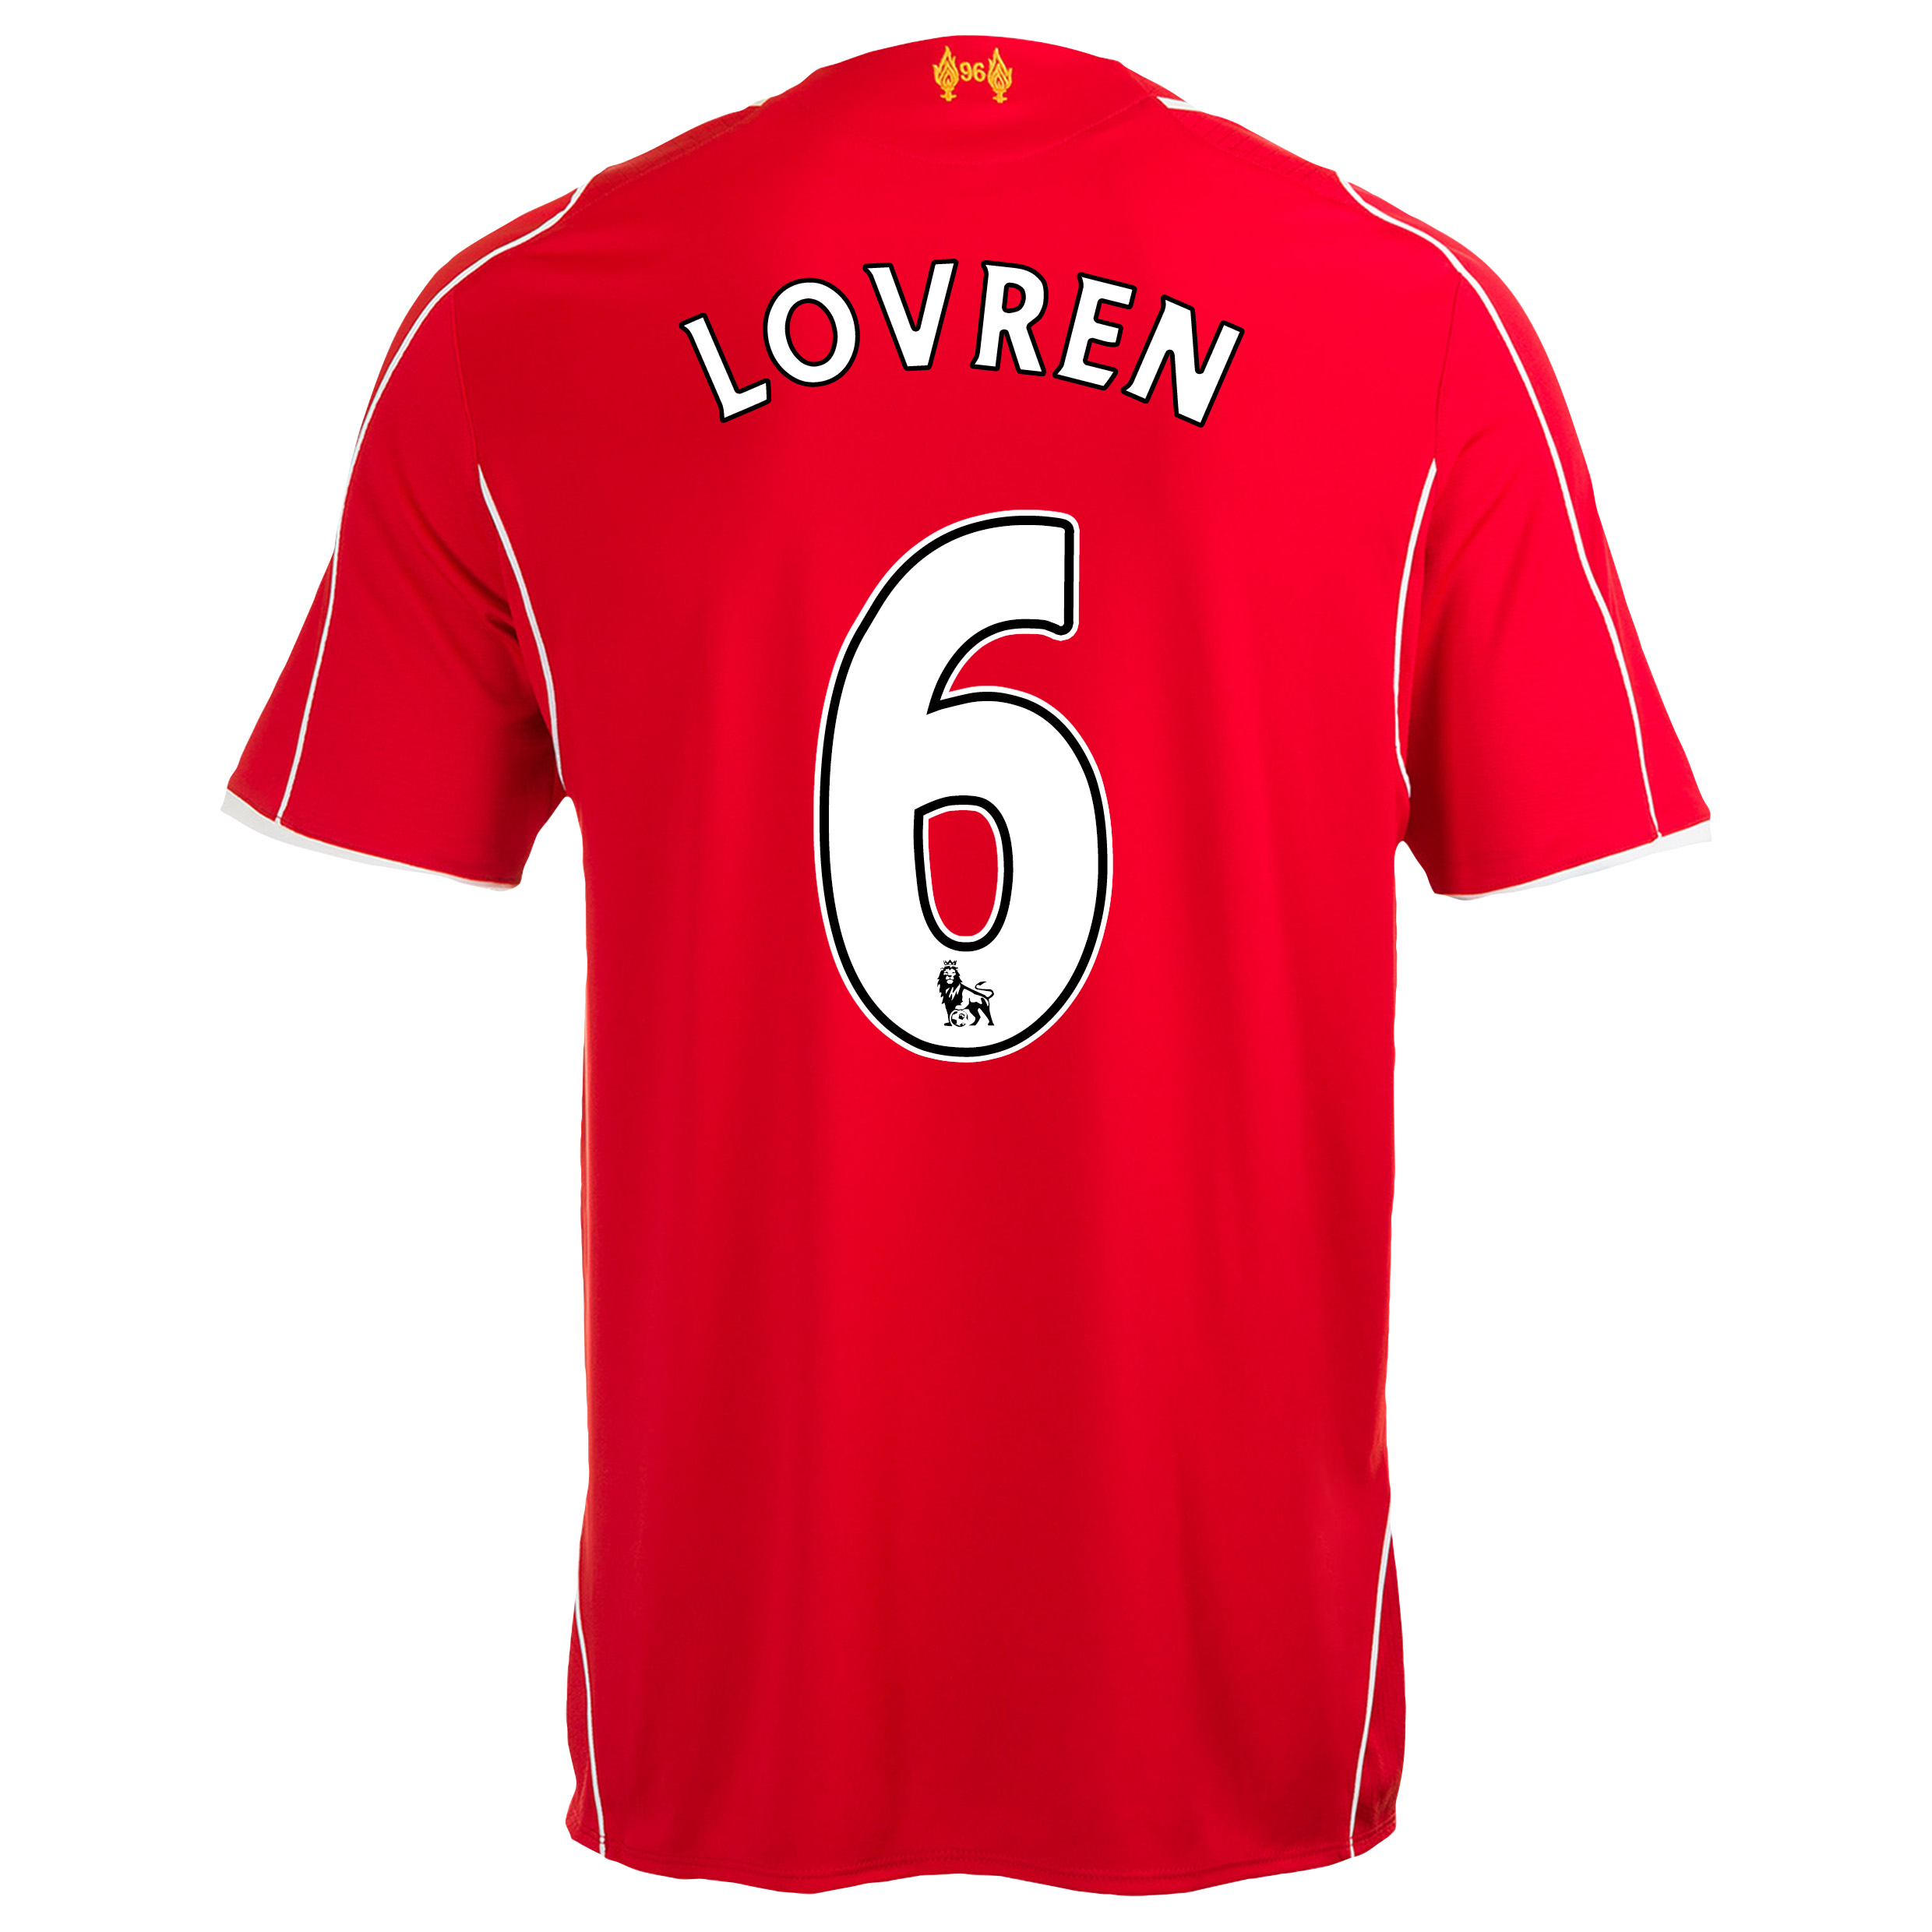 Liverpool Home Infant Kit 2014/15 with Lovren 6 printing